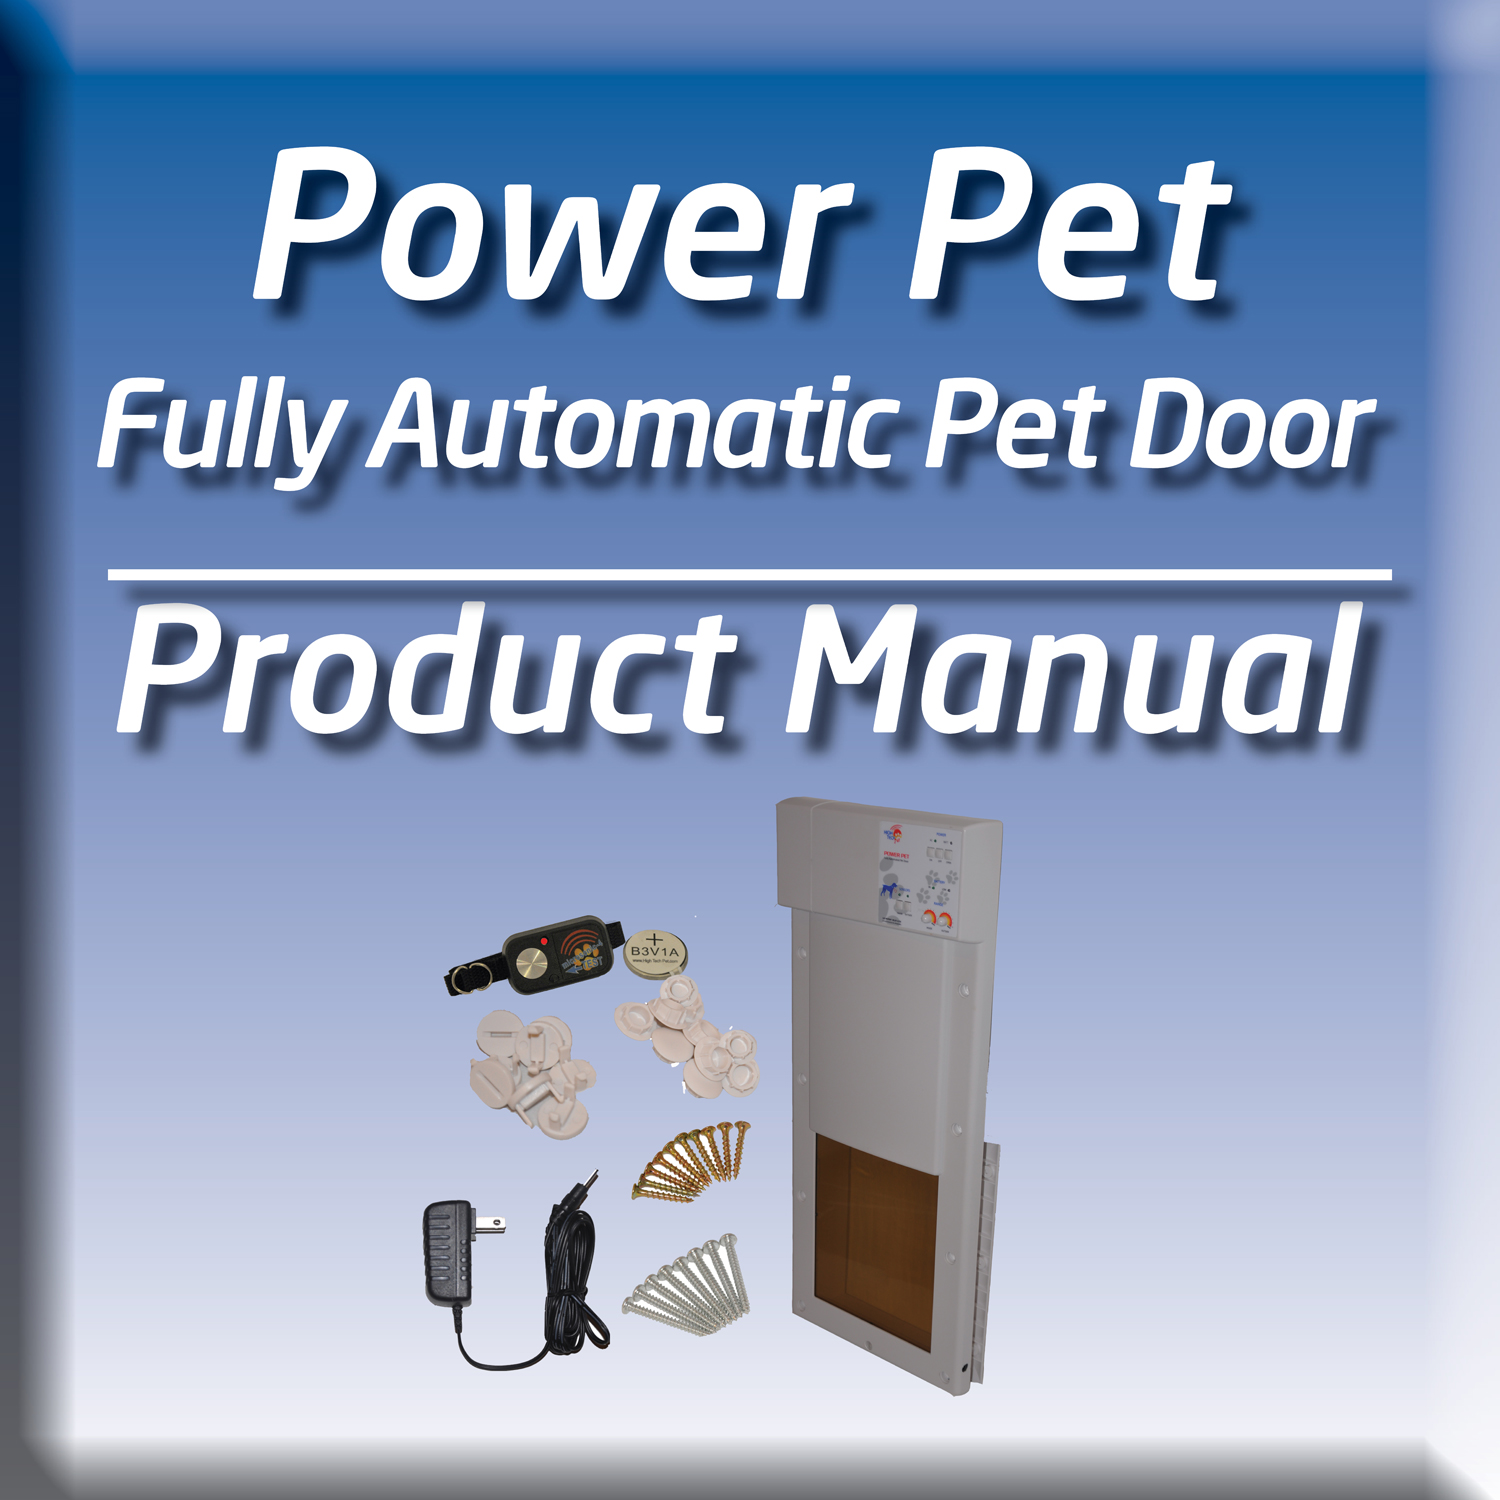 Keep your dog safe and free with this dog door